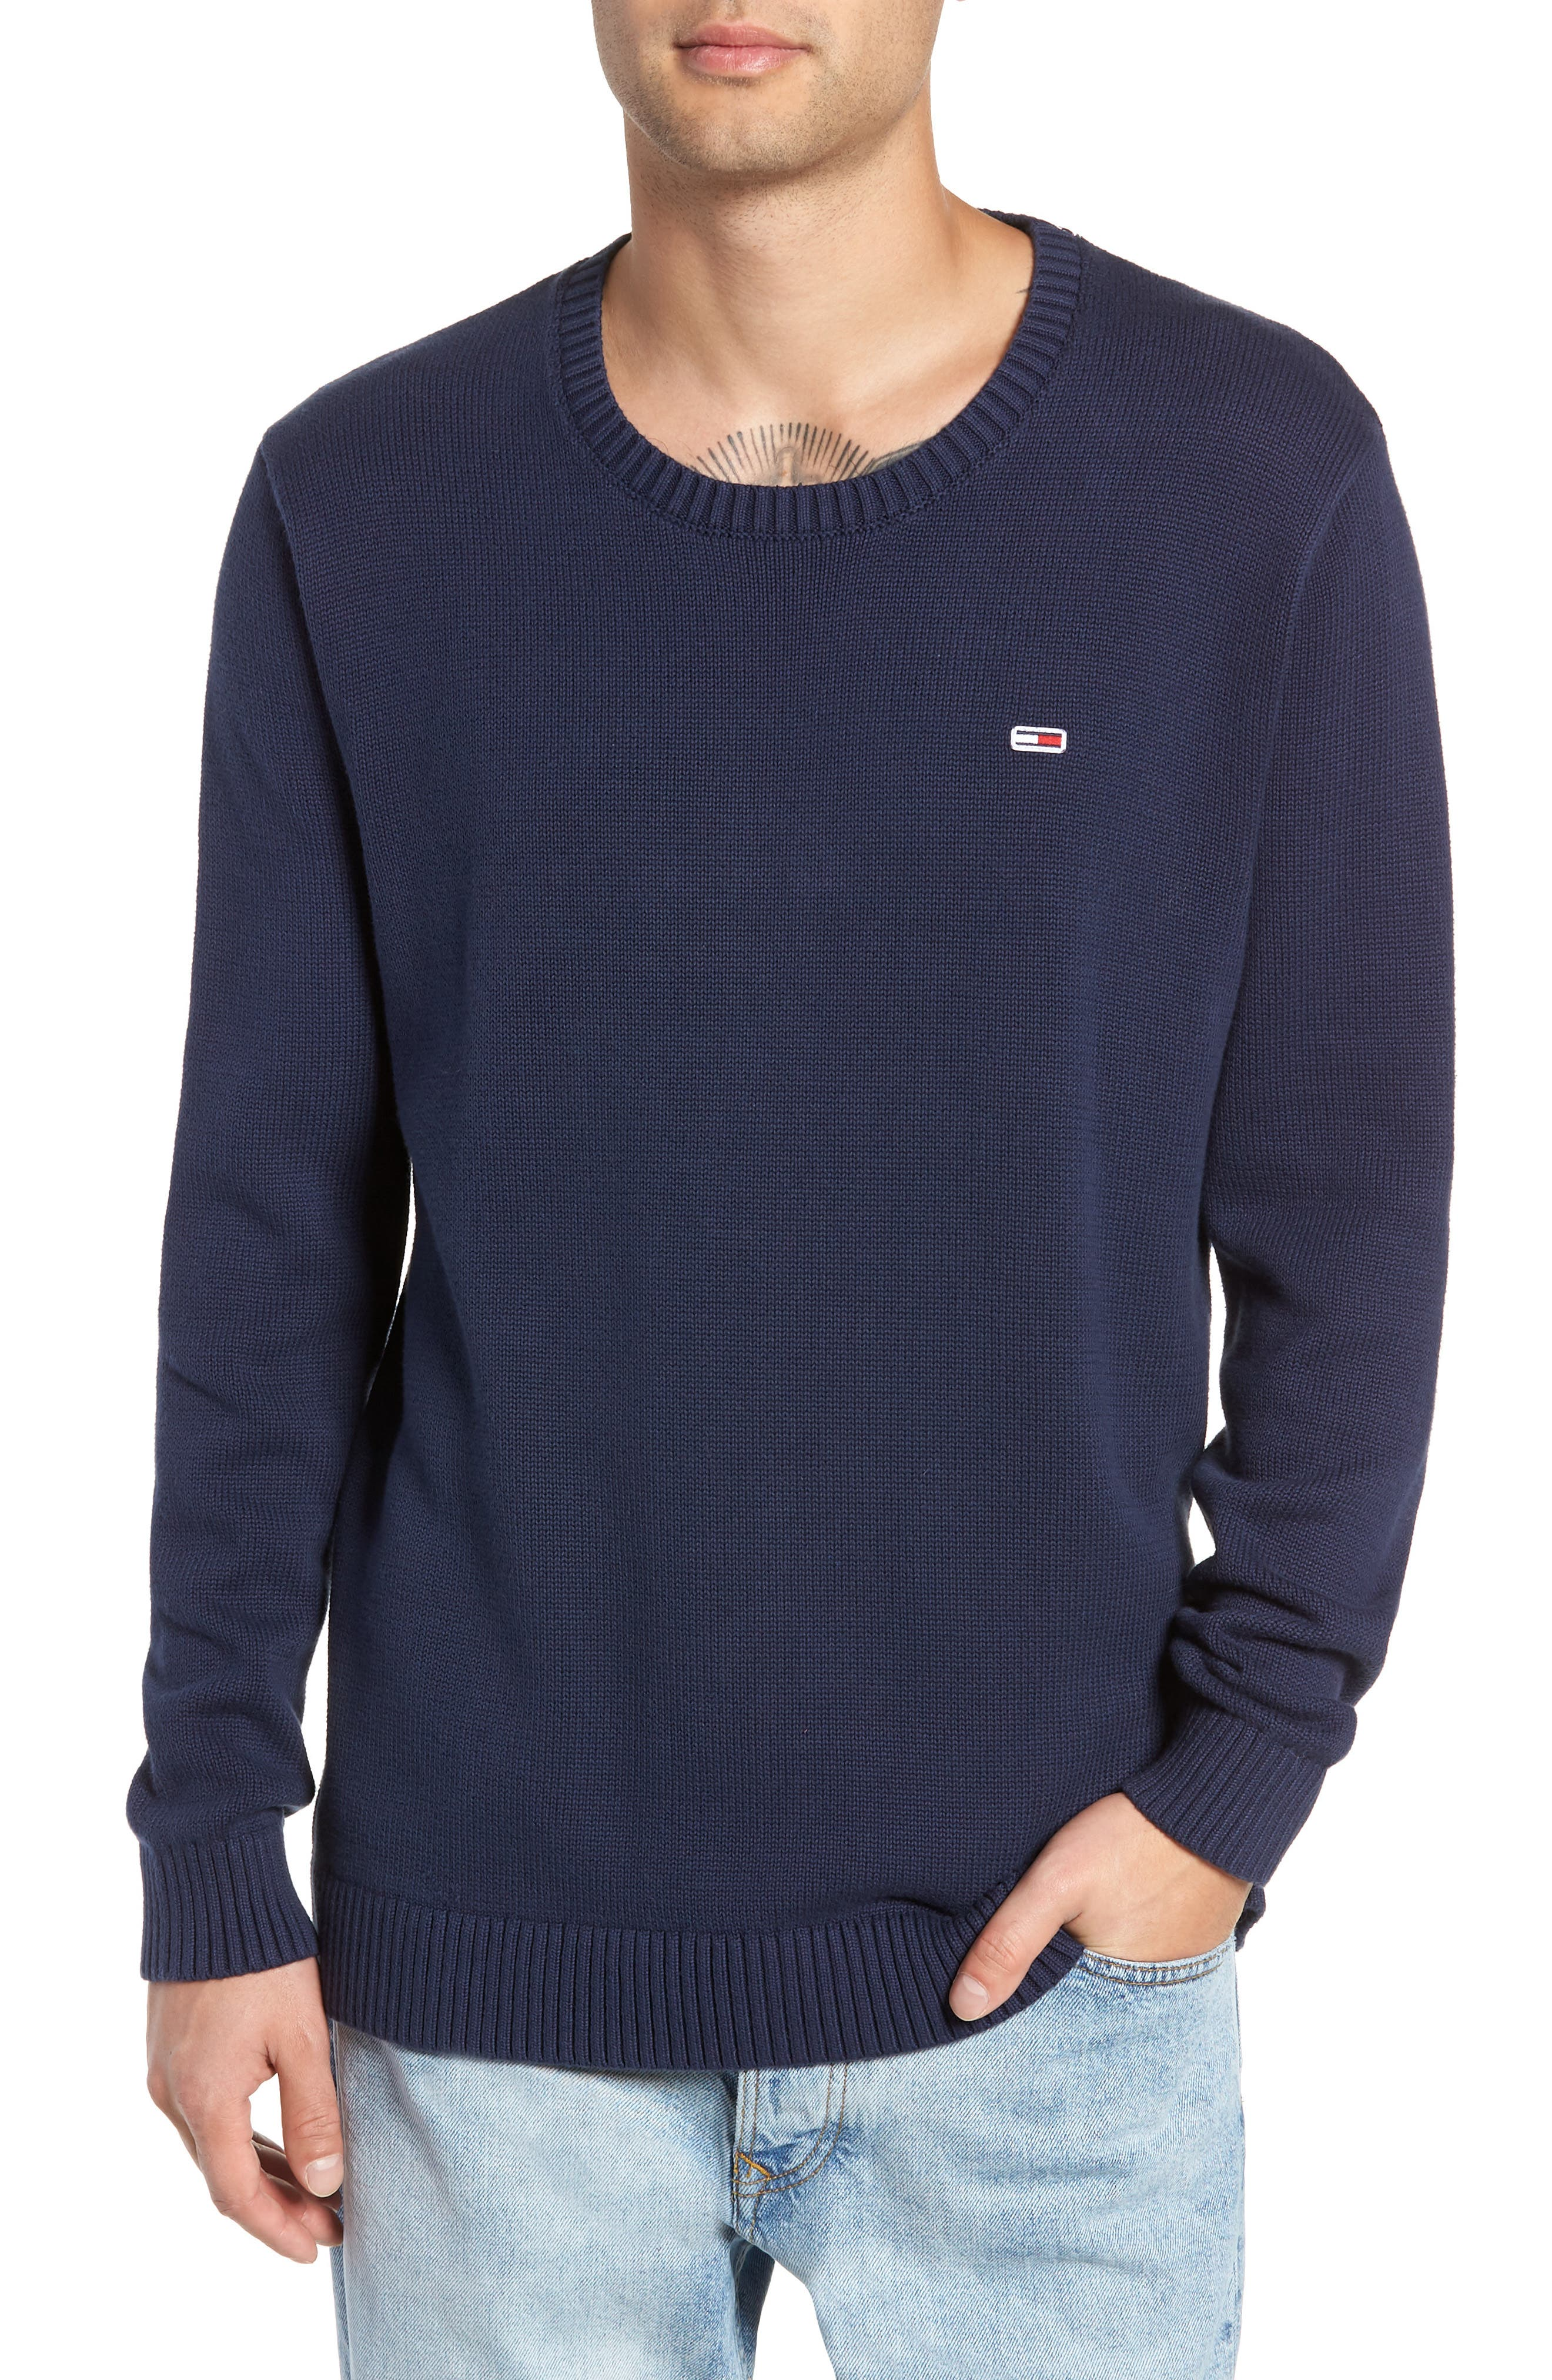 TJM Tommy Classics Sweater,                             Main thumbnail 1, color,                             BLACK IRIS